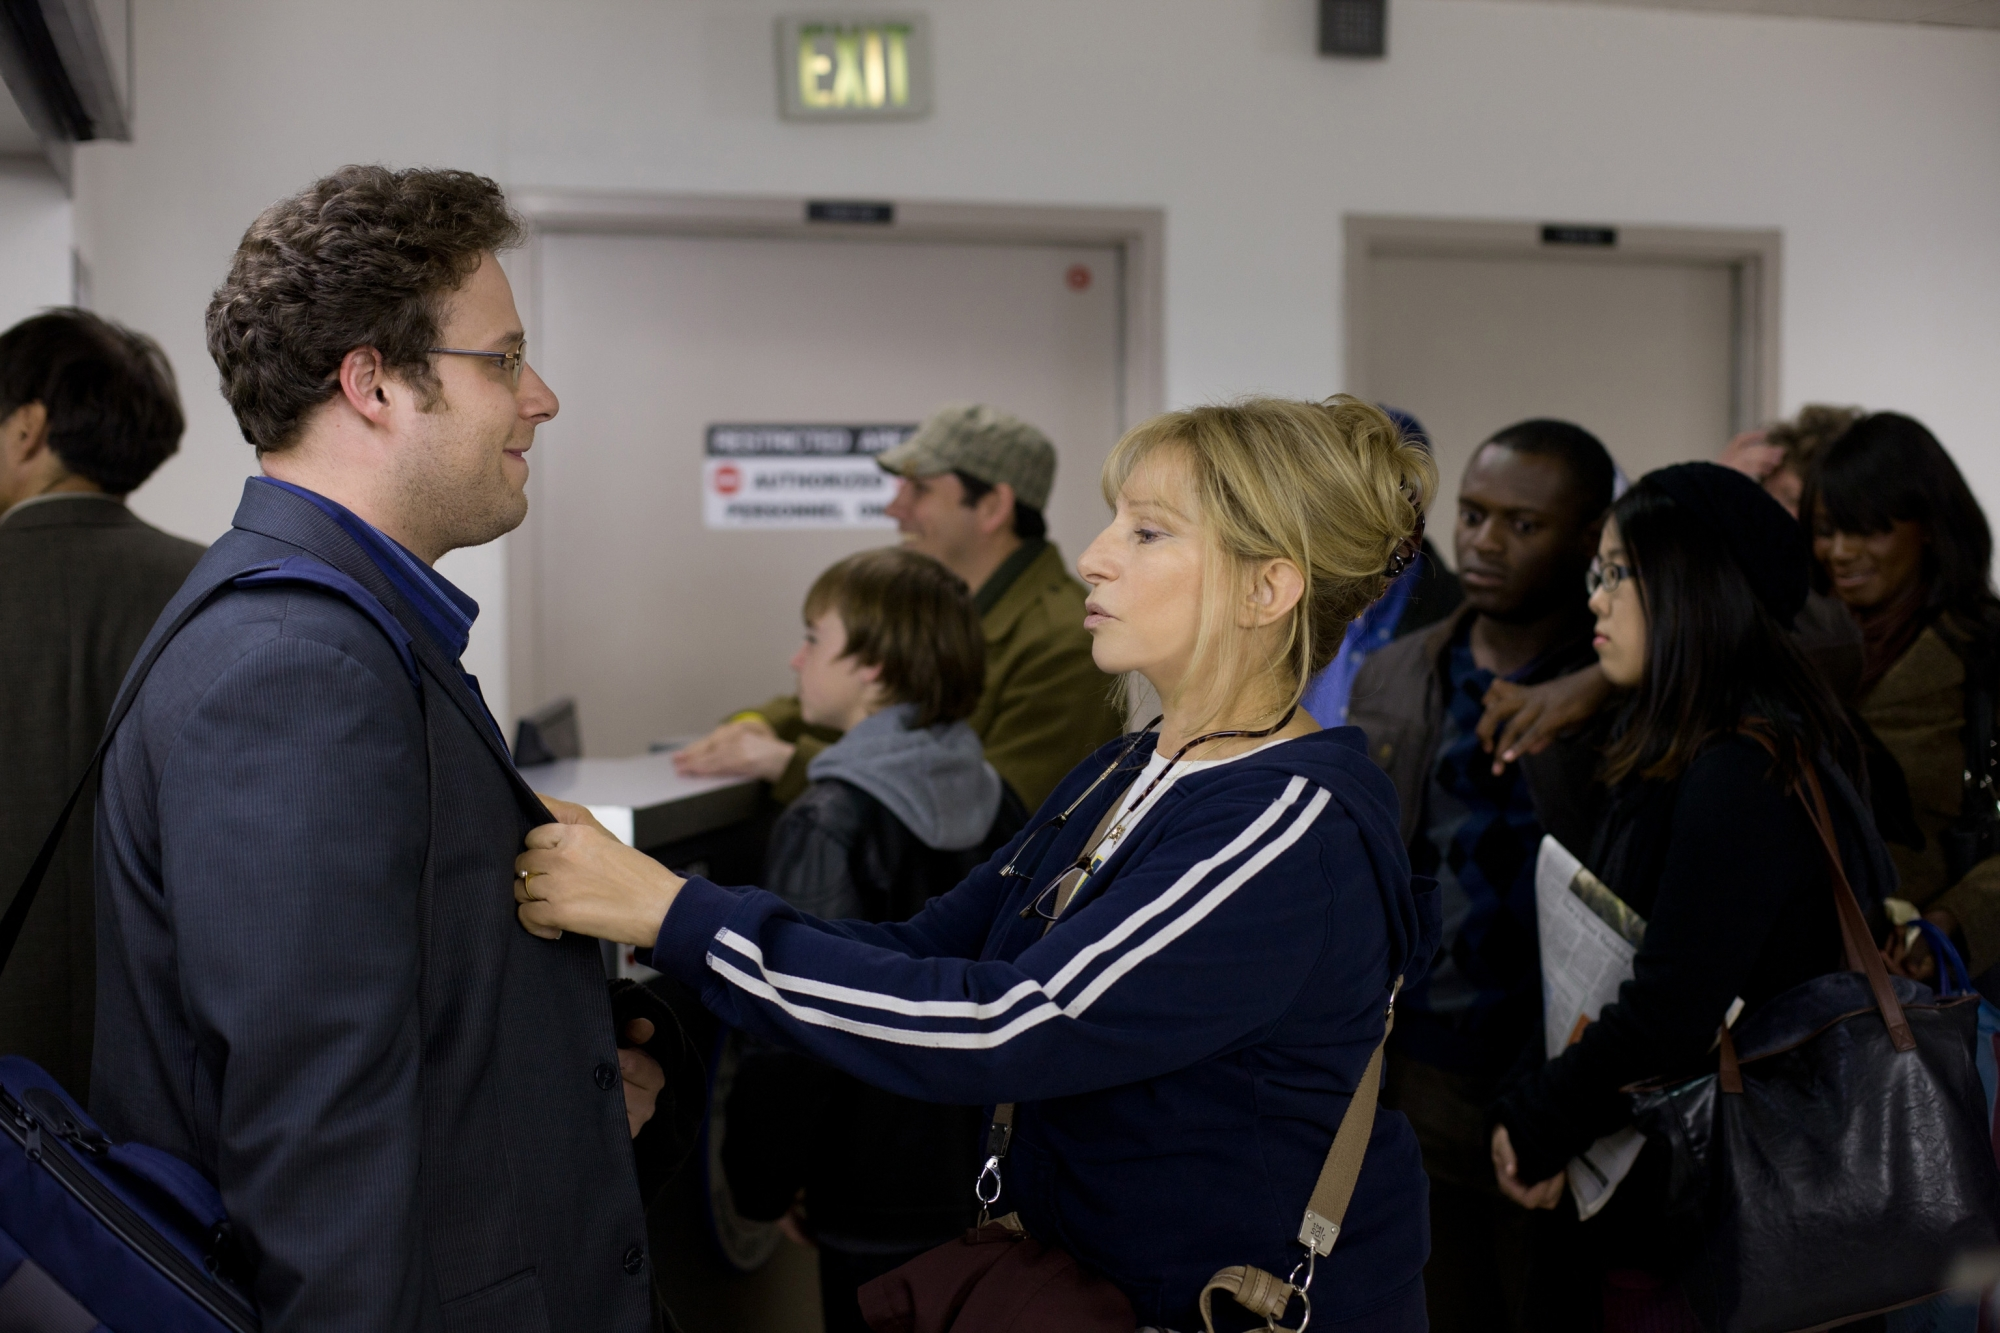 L.A. Premiere: The Guilt Trip Starring Streisand and Rogen